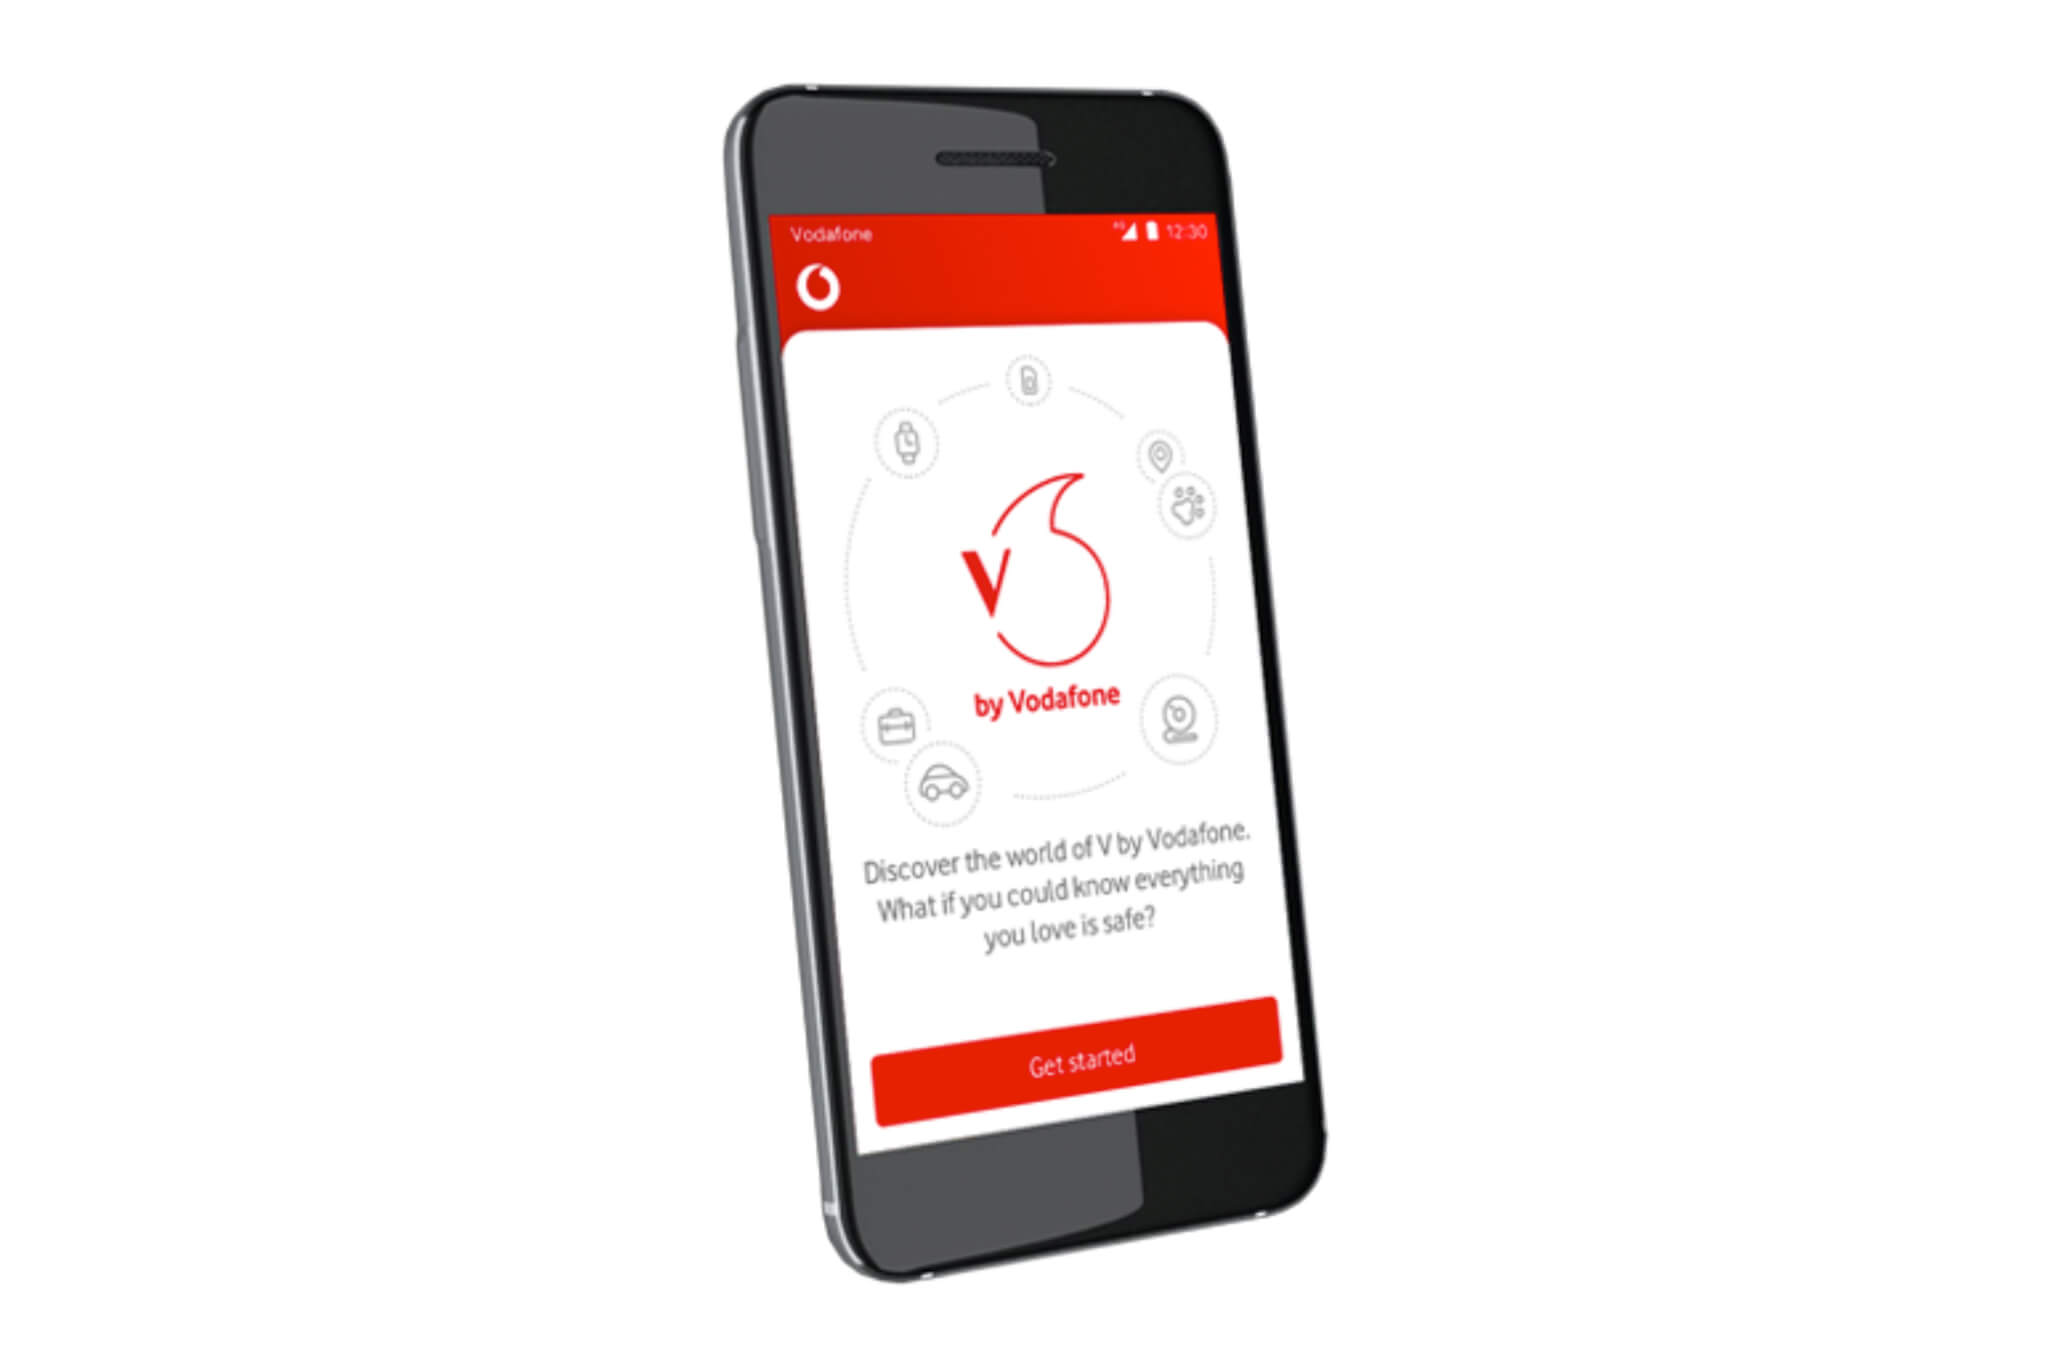 V by Vodafone - Smart devices from Vodafone